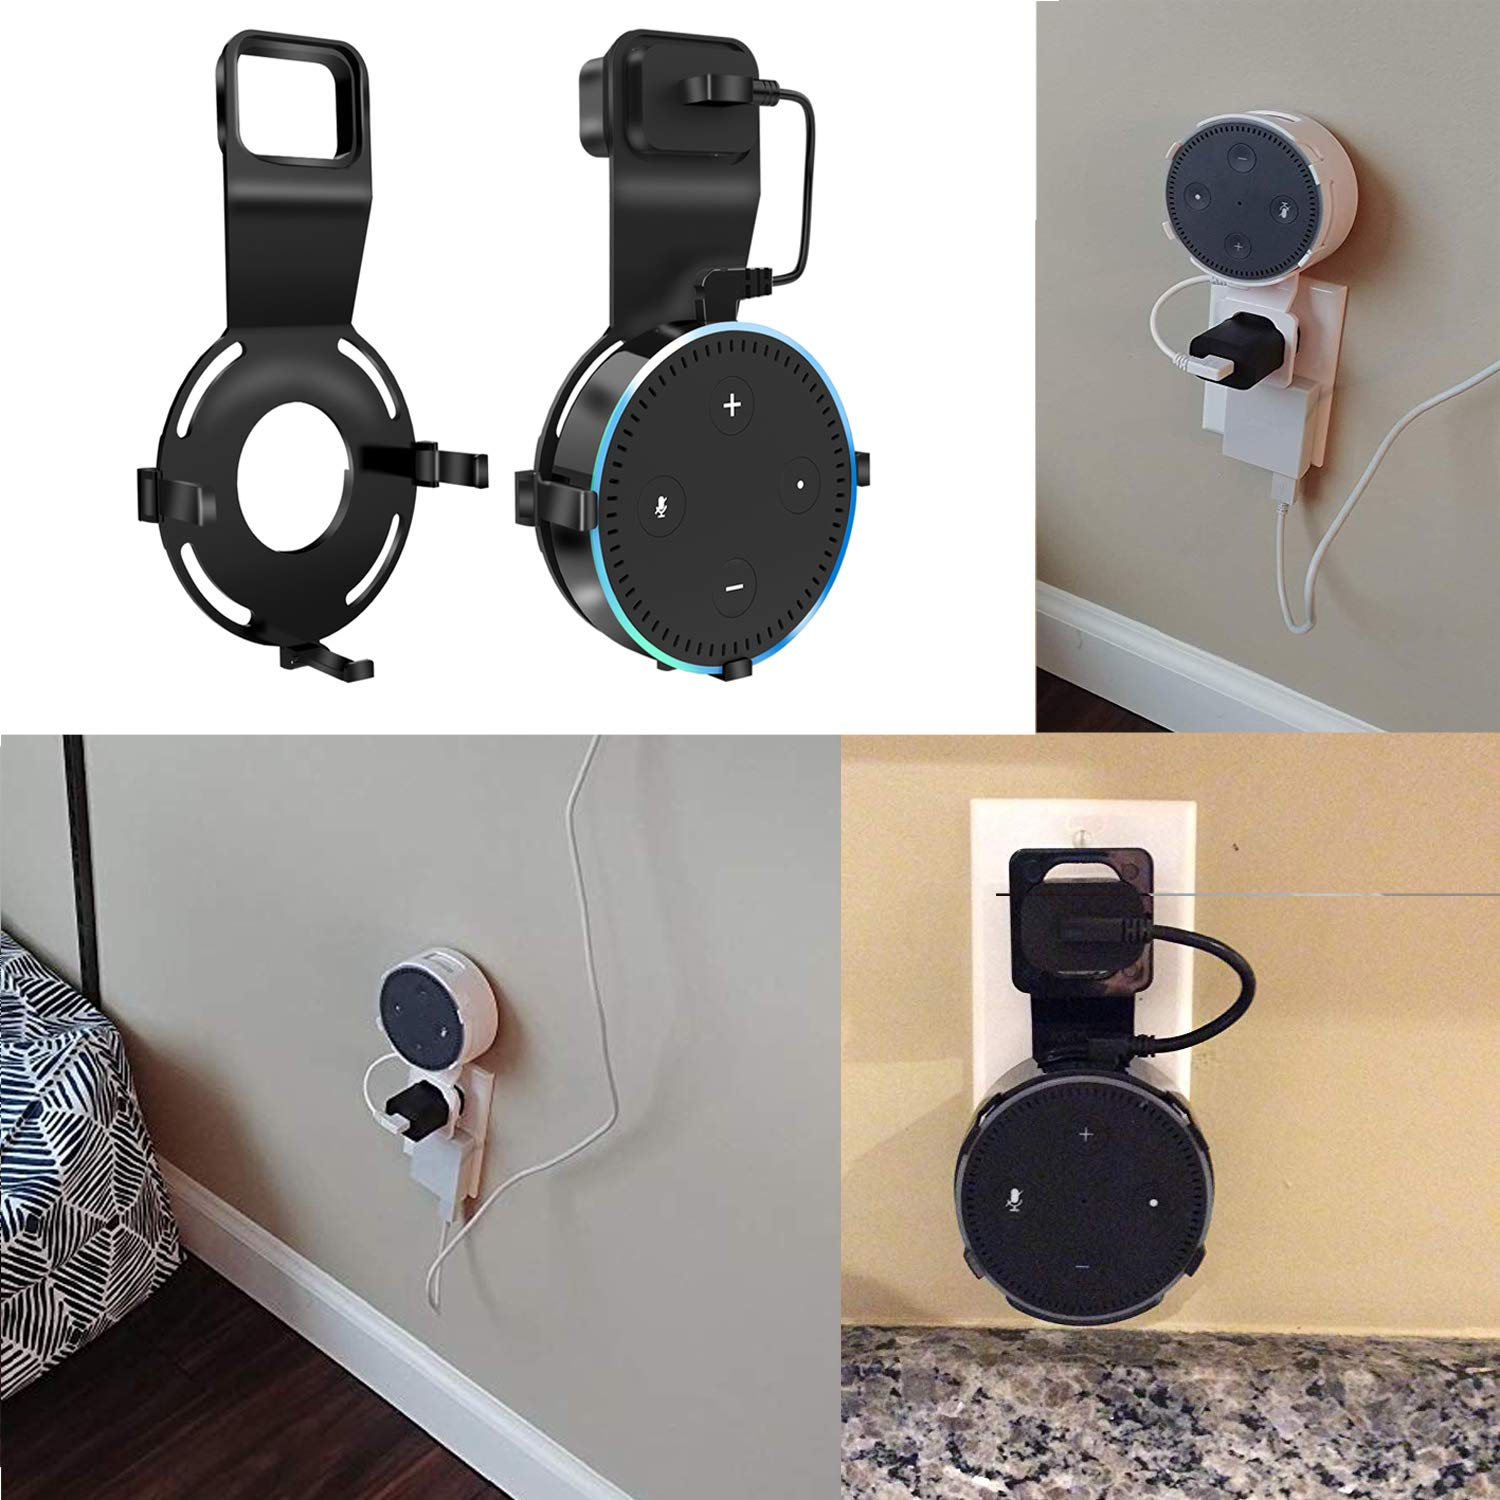 Echo Dot Wall Mount, Ofspower Smart Home Alexa Accessories Outlet Wall Mount Echogear Stand for Amazon Echo 2nd Generation Speaker Holder with Charging Cable, Folable and Compact Kitchen Accessory